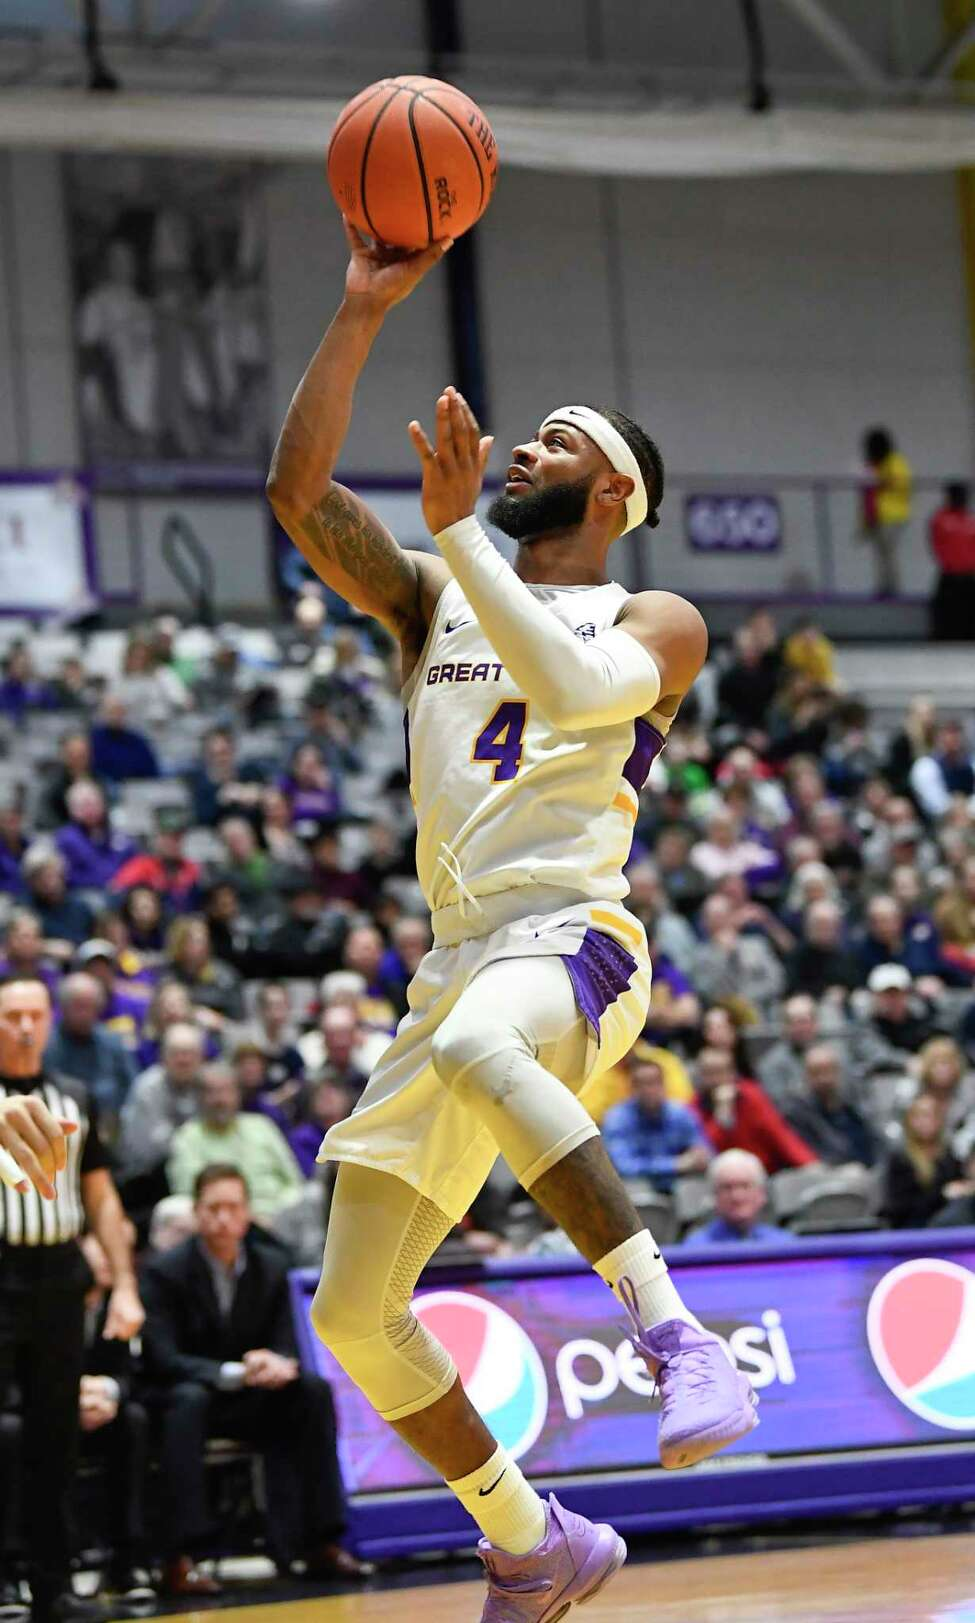 University at Albany guard Ahmad Clark (4) scores against New Hampshire during the first half of an NCAA basketball game Saturday, Feb. 22, 2020, in Albany, N.Y., (Hans Pennink / Special to the Times Union)